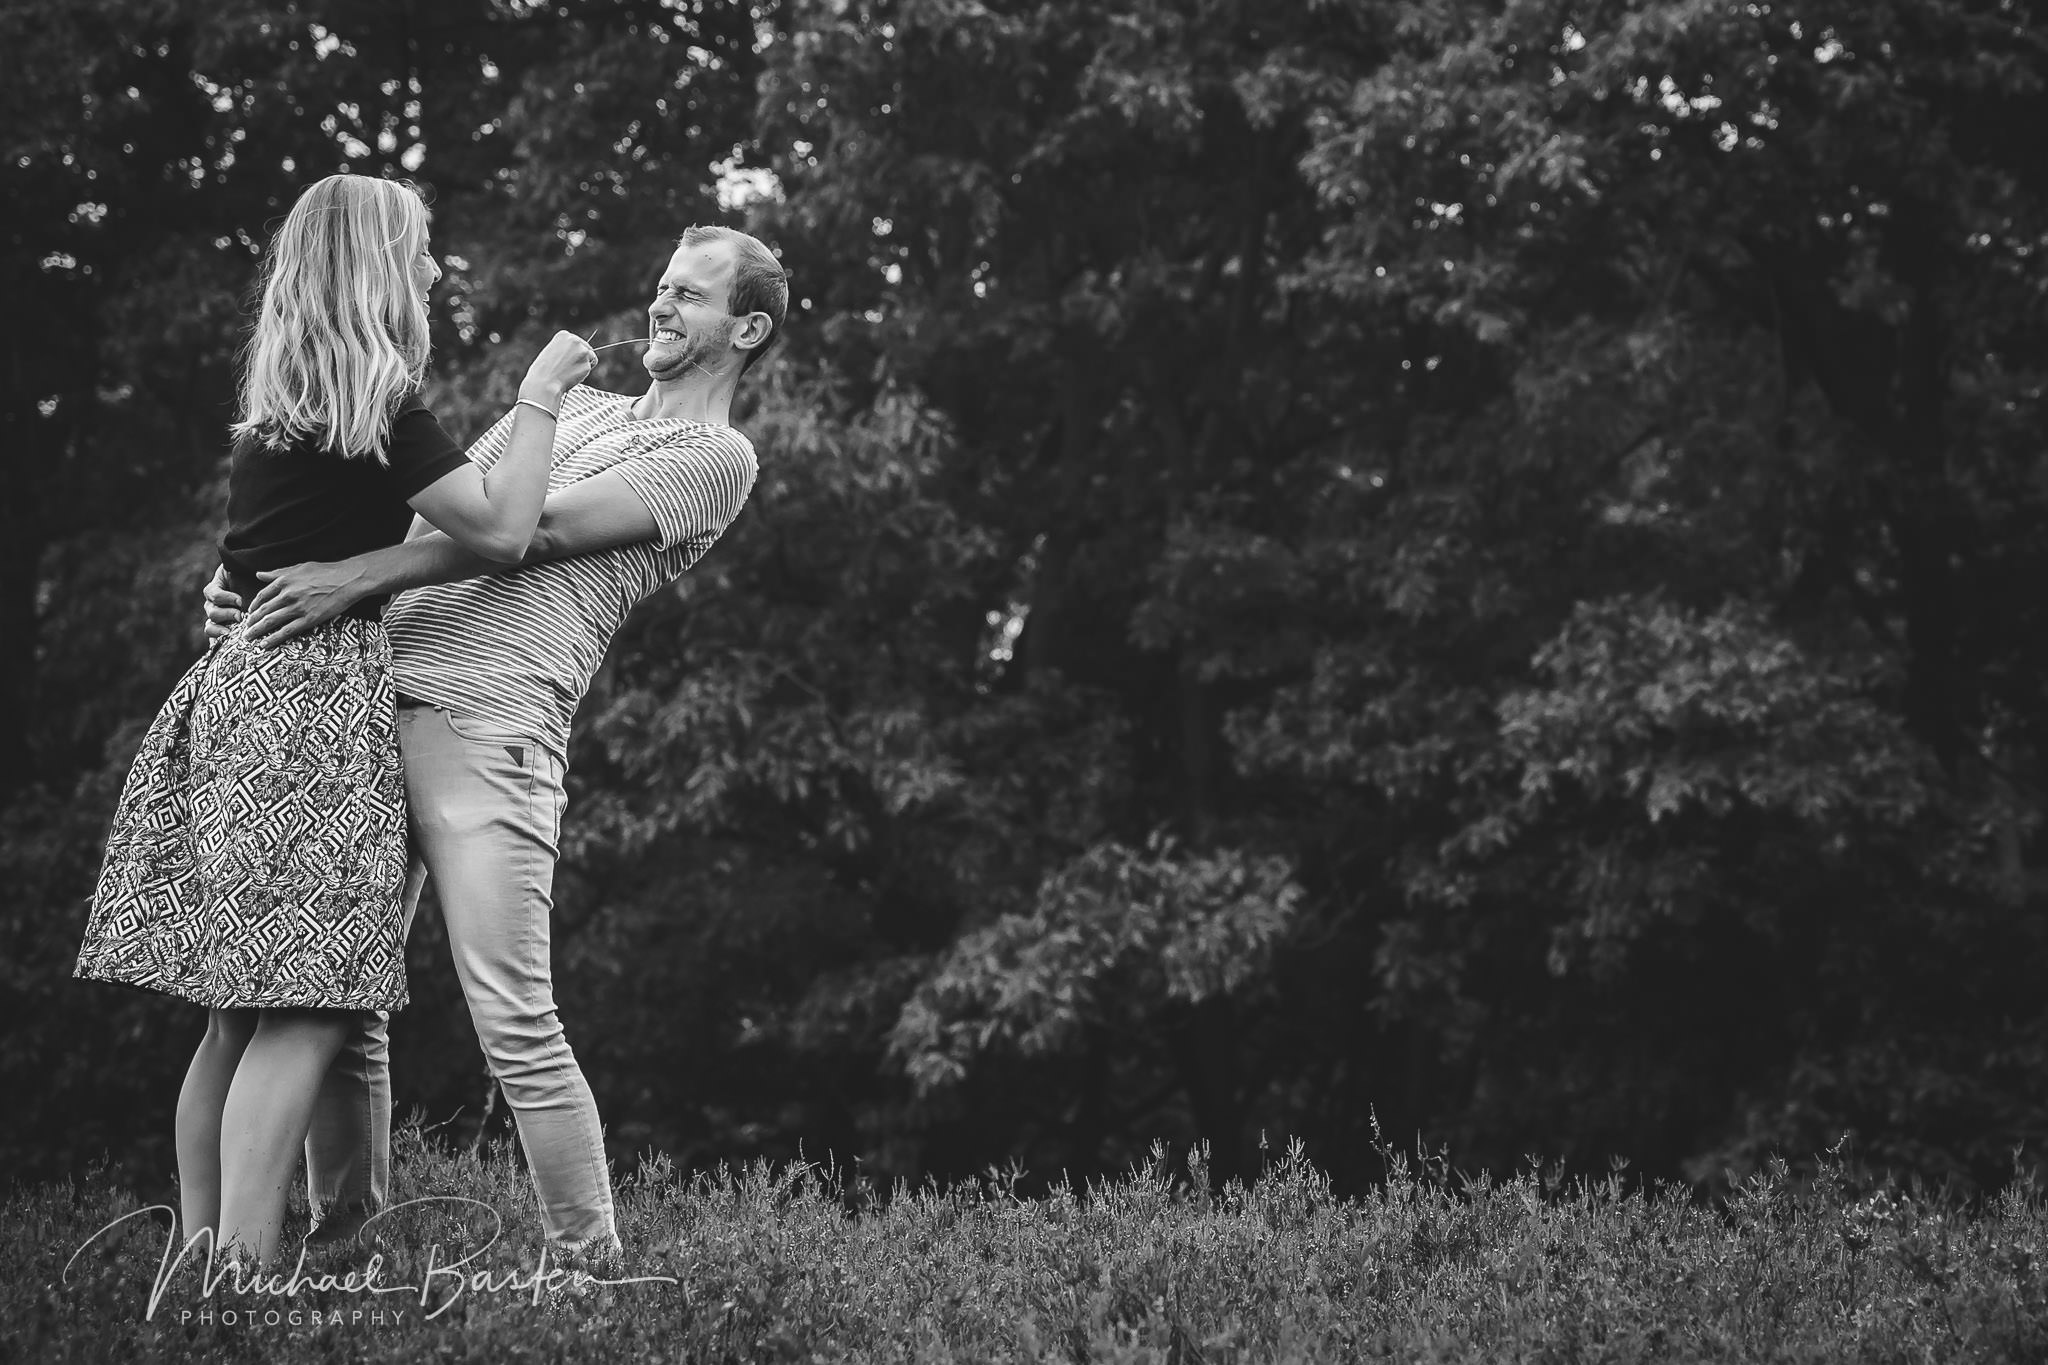 Loveshoot Grada & Roy - Zwolle